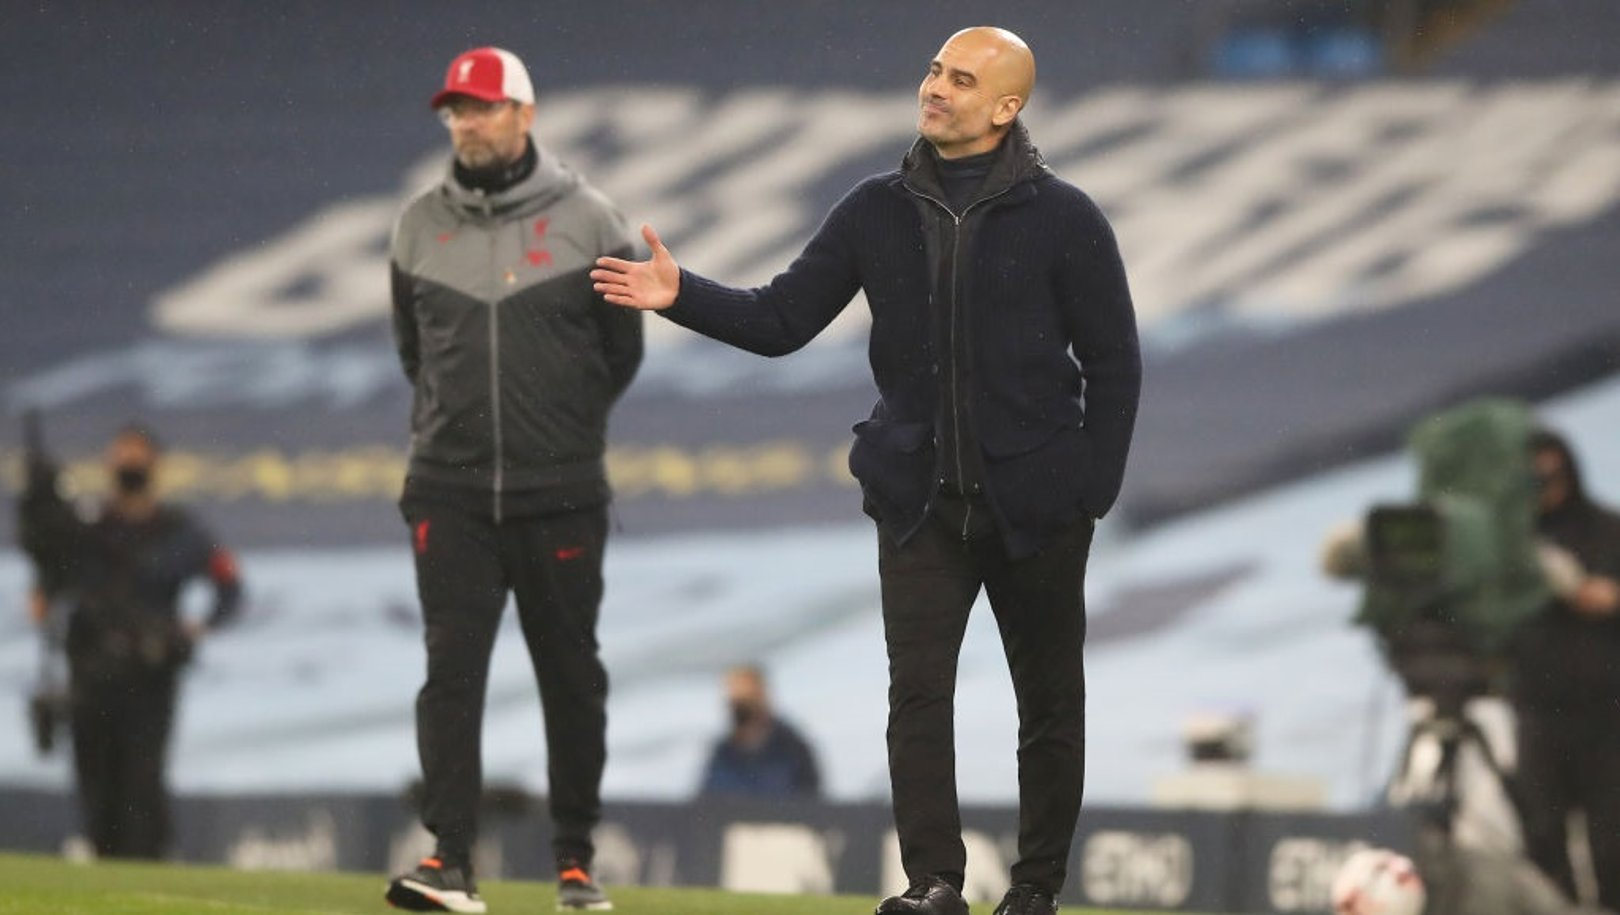 'It was a fair result,' says Pep